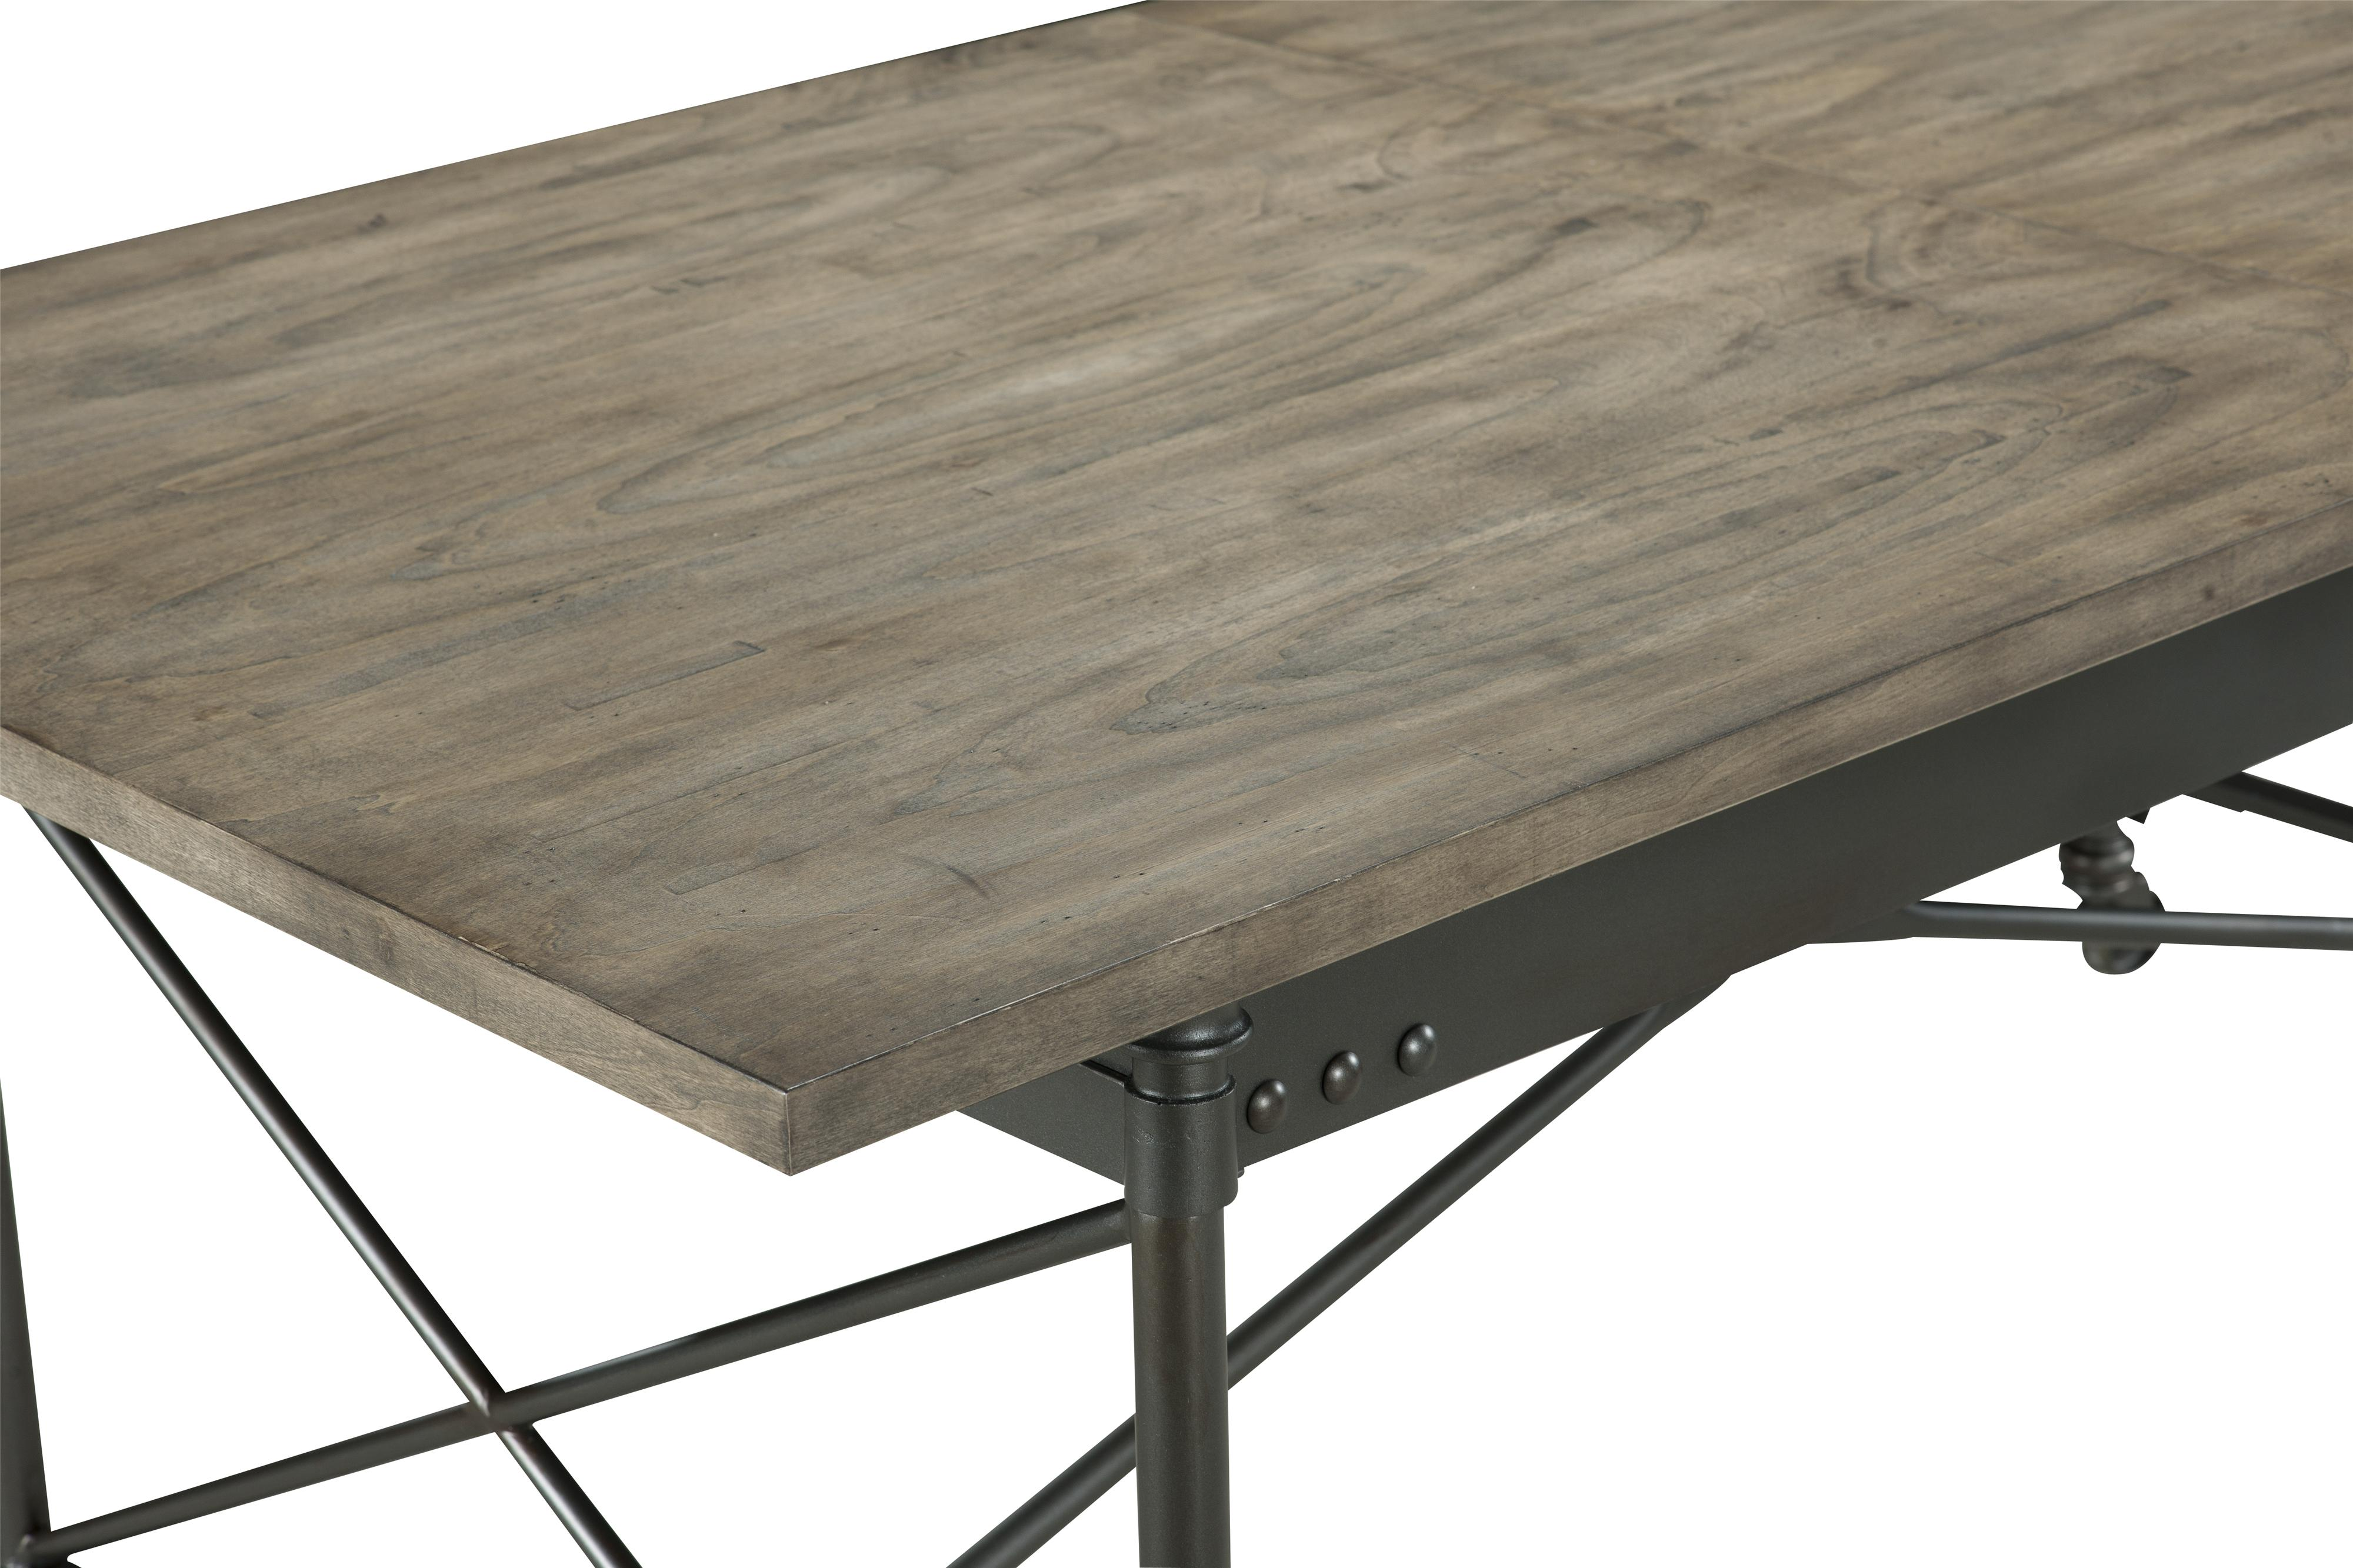 rustic dining table with casters and extension leaf by magnussen home - Magnussen Dining Room Furniture